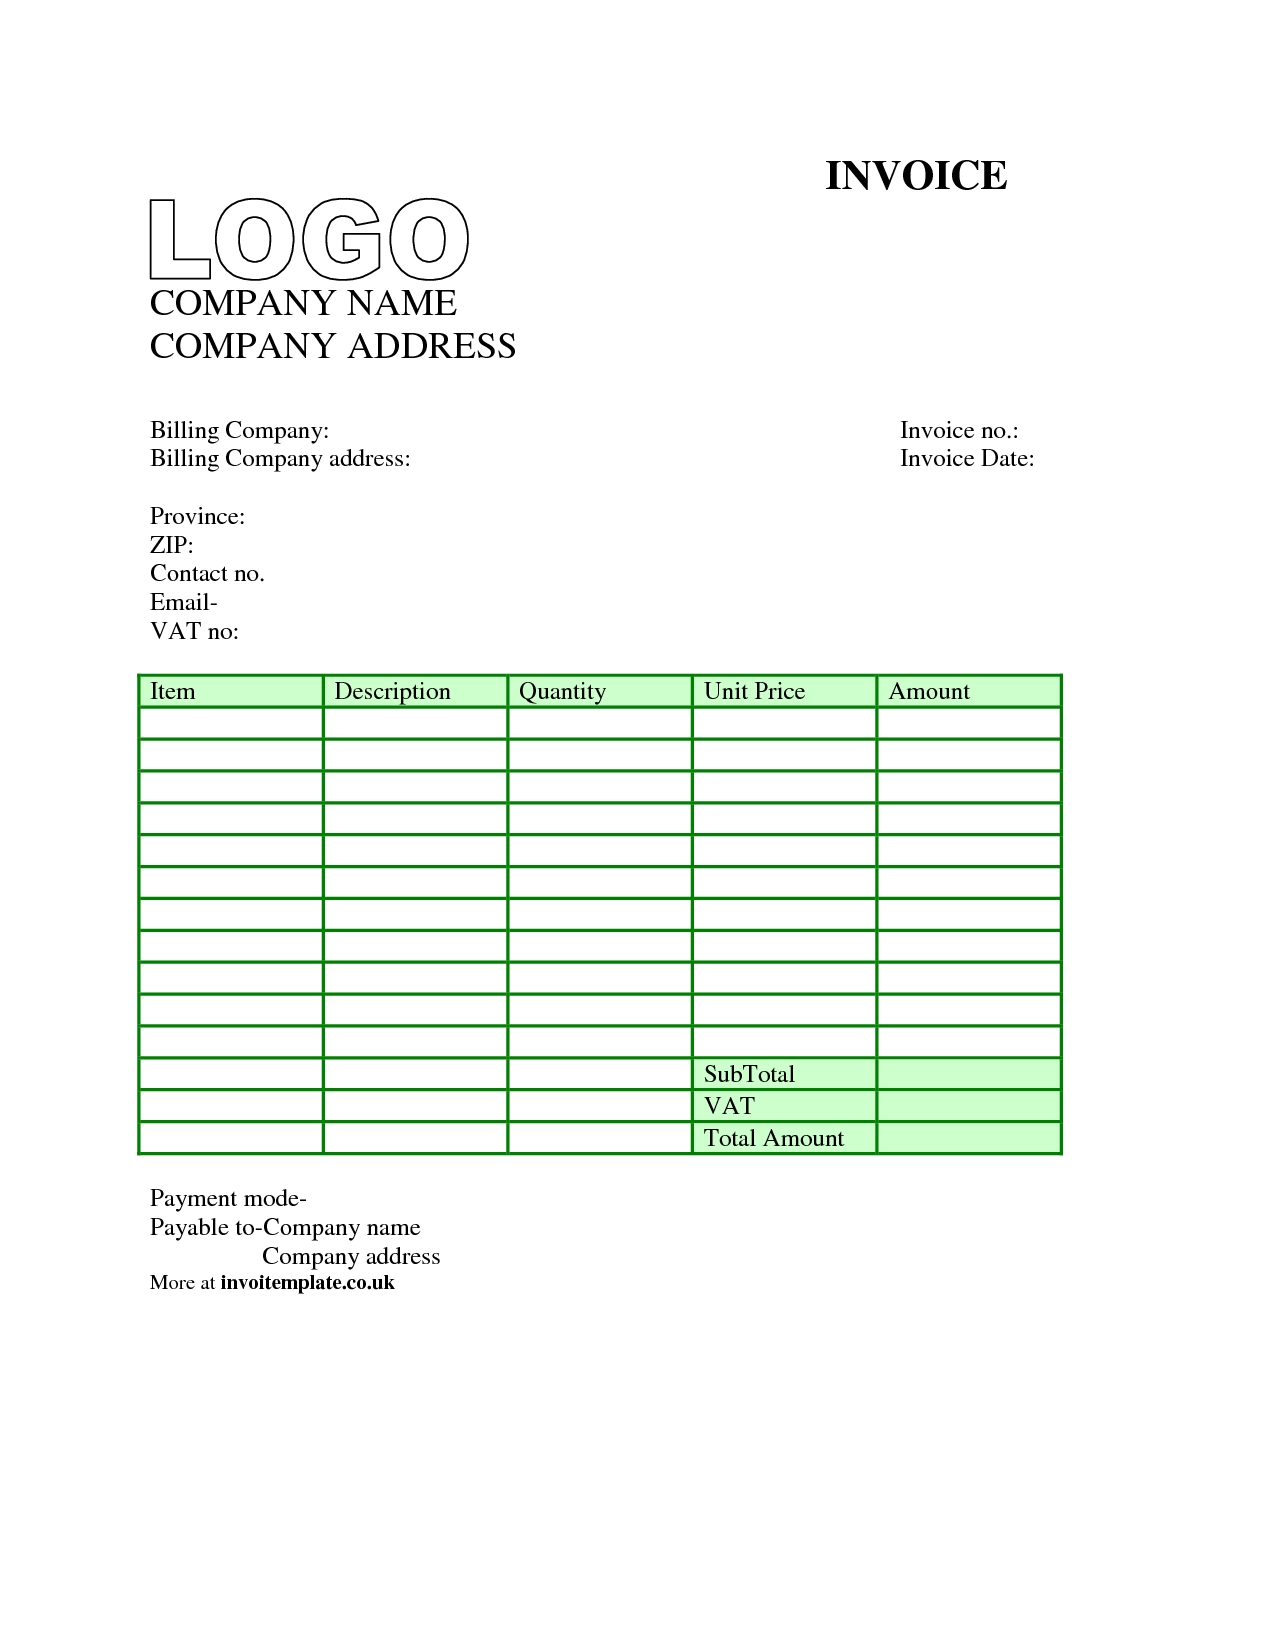 free invoice template uk 12 best photos of free invoice template downloads free invoice 1275 X 1650